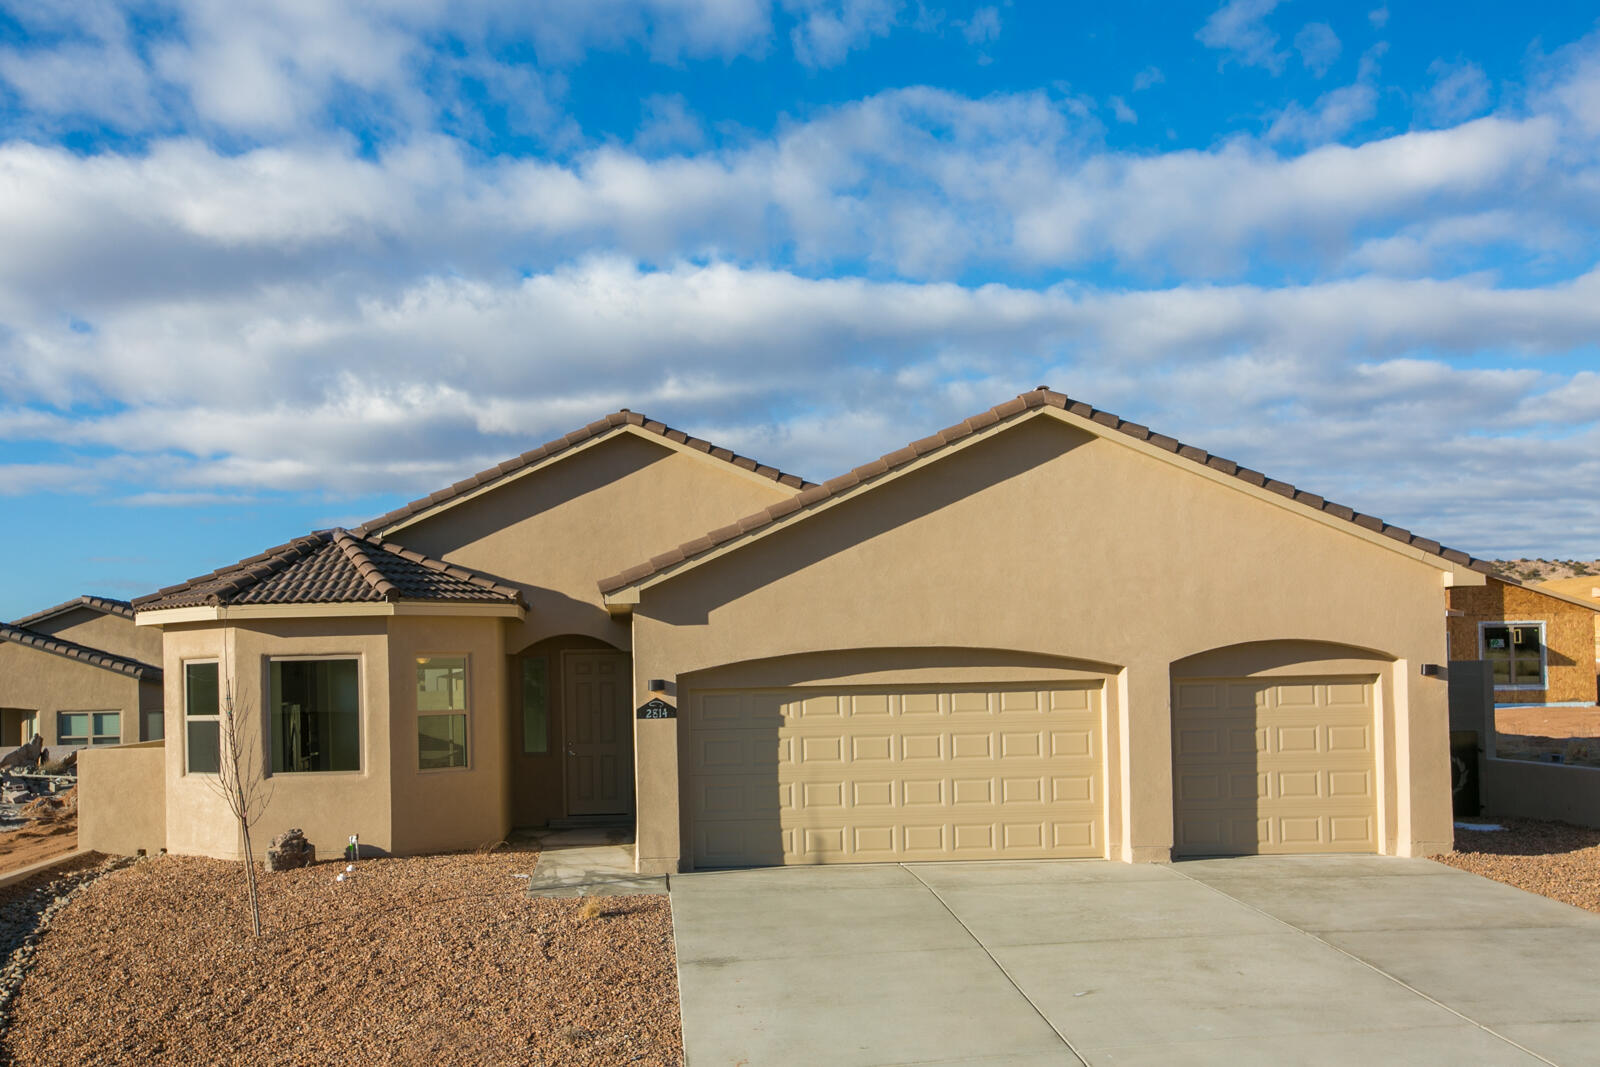 New construction on this beautiful new Twilight Home will begin soon. Pictures are concept renderings. Actual finishes and selections may vary. Get in on the ground floor of this new build in the desirable community of Mountain Hawk. Buy now and make your own tile, paint, stucco, granite, and carpet selections! Watch your home being built from the ground up. This home has such great standard features including a fireplace, Large walk in master closet, Covered back patio, double sinks in master, garage door opener, Stainless steel kitchen appliances include SxS refrigerator, range, dishwasher and microwave. Washer and dryer (white) in separate laundry room. Led lighting throughout. Build Green NM Silver Certified.